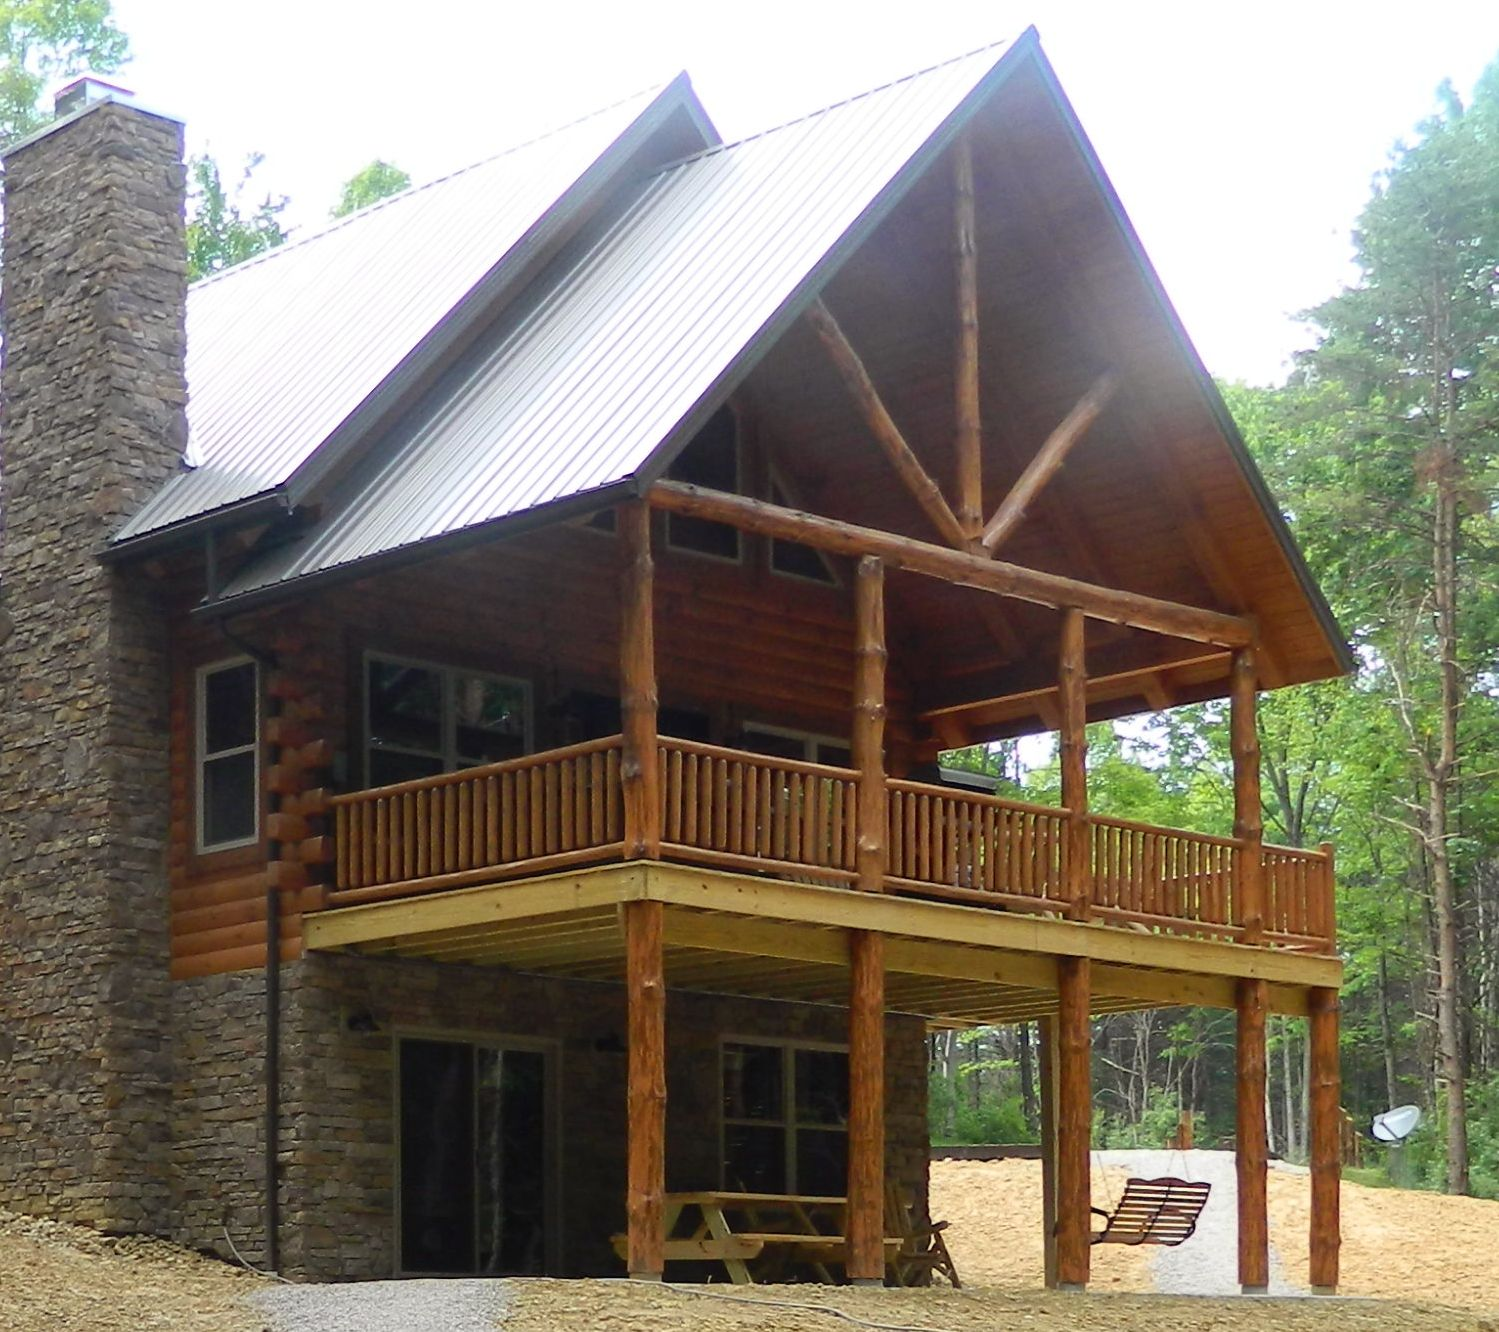 cabins rental back in photos for timber rentals rosedale lodging view cabin families gallery ohio lodge cheap